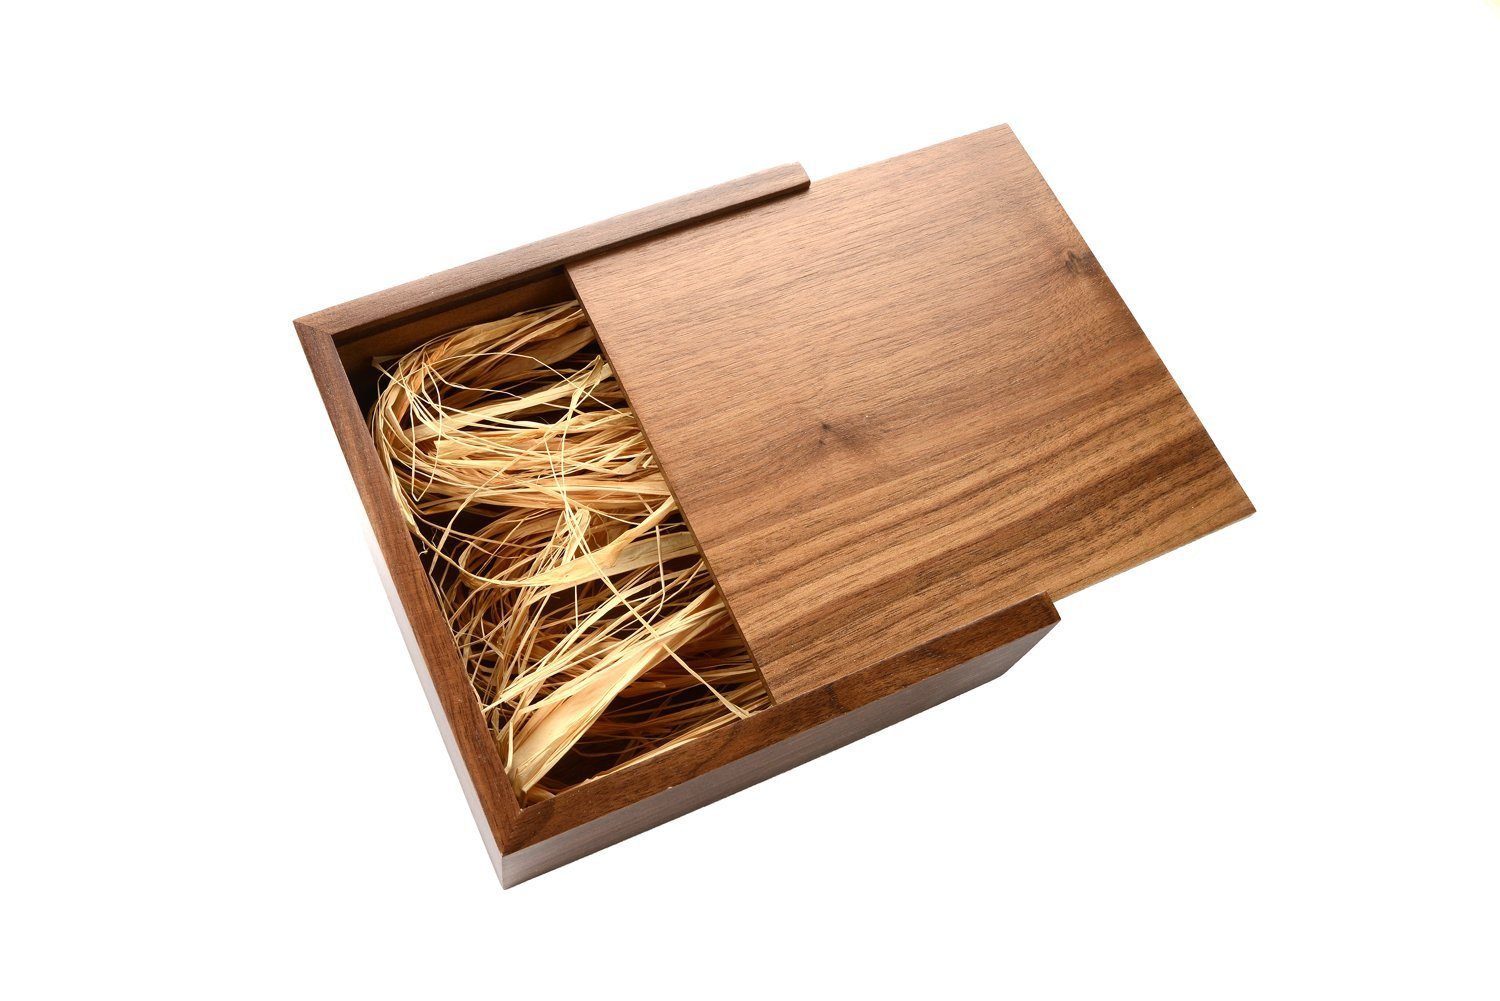 Walnut Wooden 4x6 Photo Box - Single Item - Holds up to 120 Prints - Filled with Raffia Grass SameDayFlash